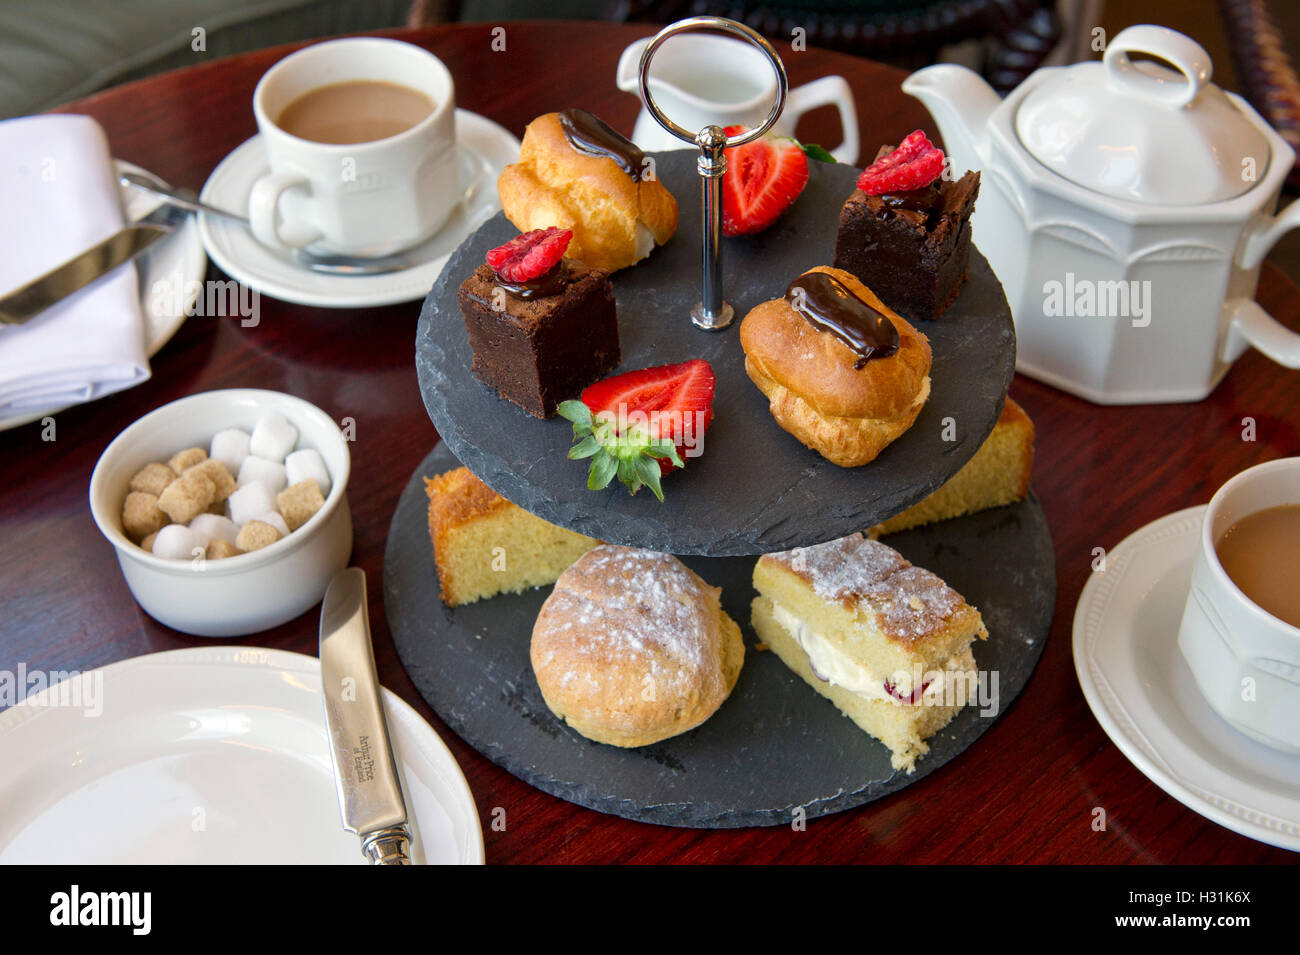 'Mill House Hotel', Swallowfield, Berkshire, UK. 'afternoon tea' cake cakes - Stock Image